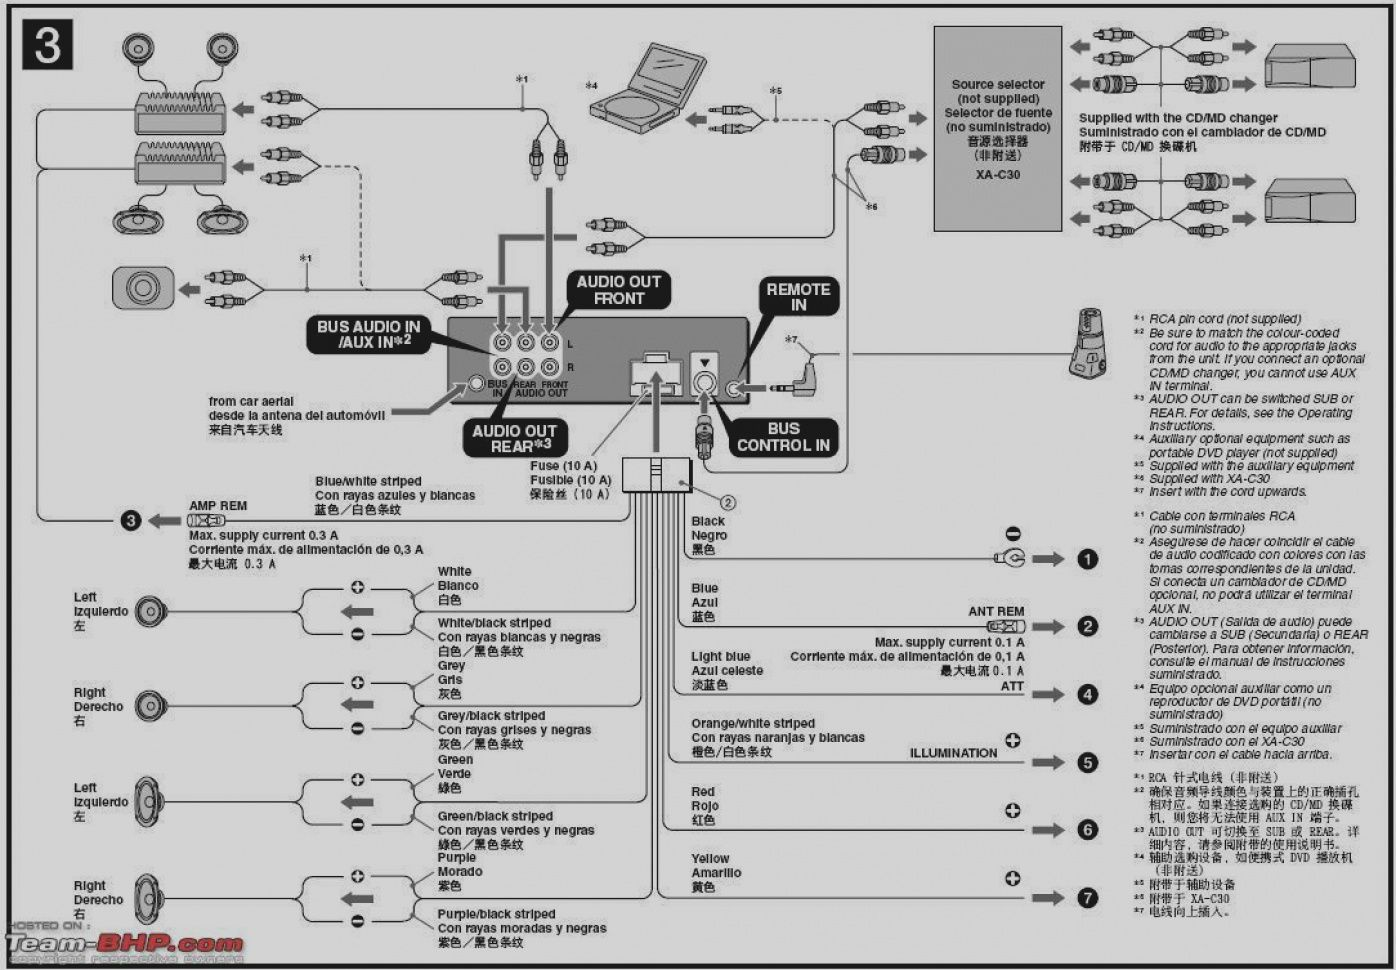 Sony Cdx Gt500 Wiring Diagram from static-resources.imageservice.cloud